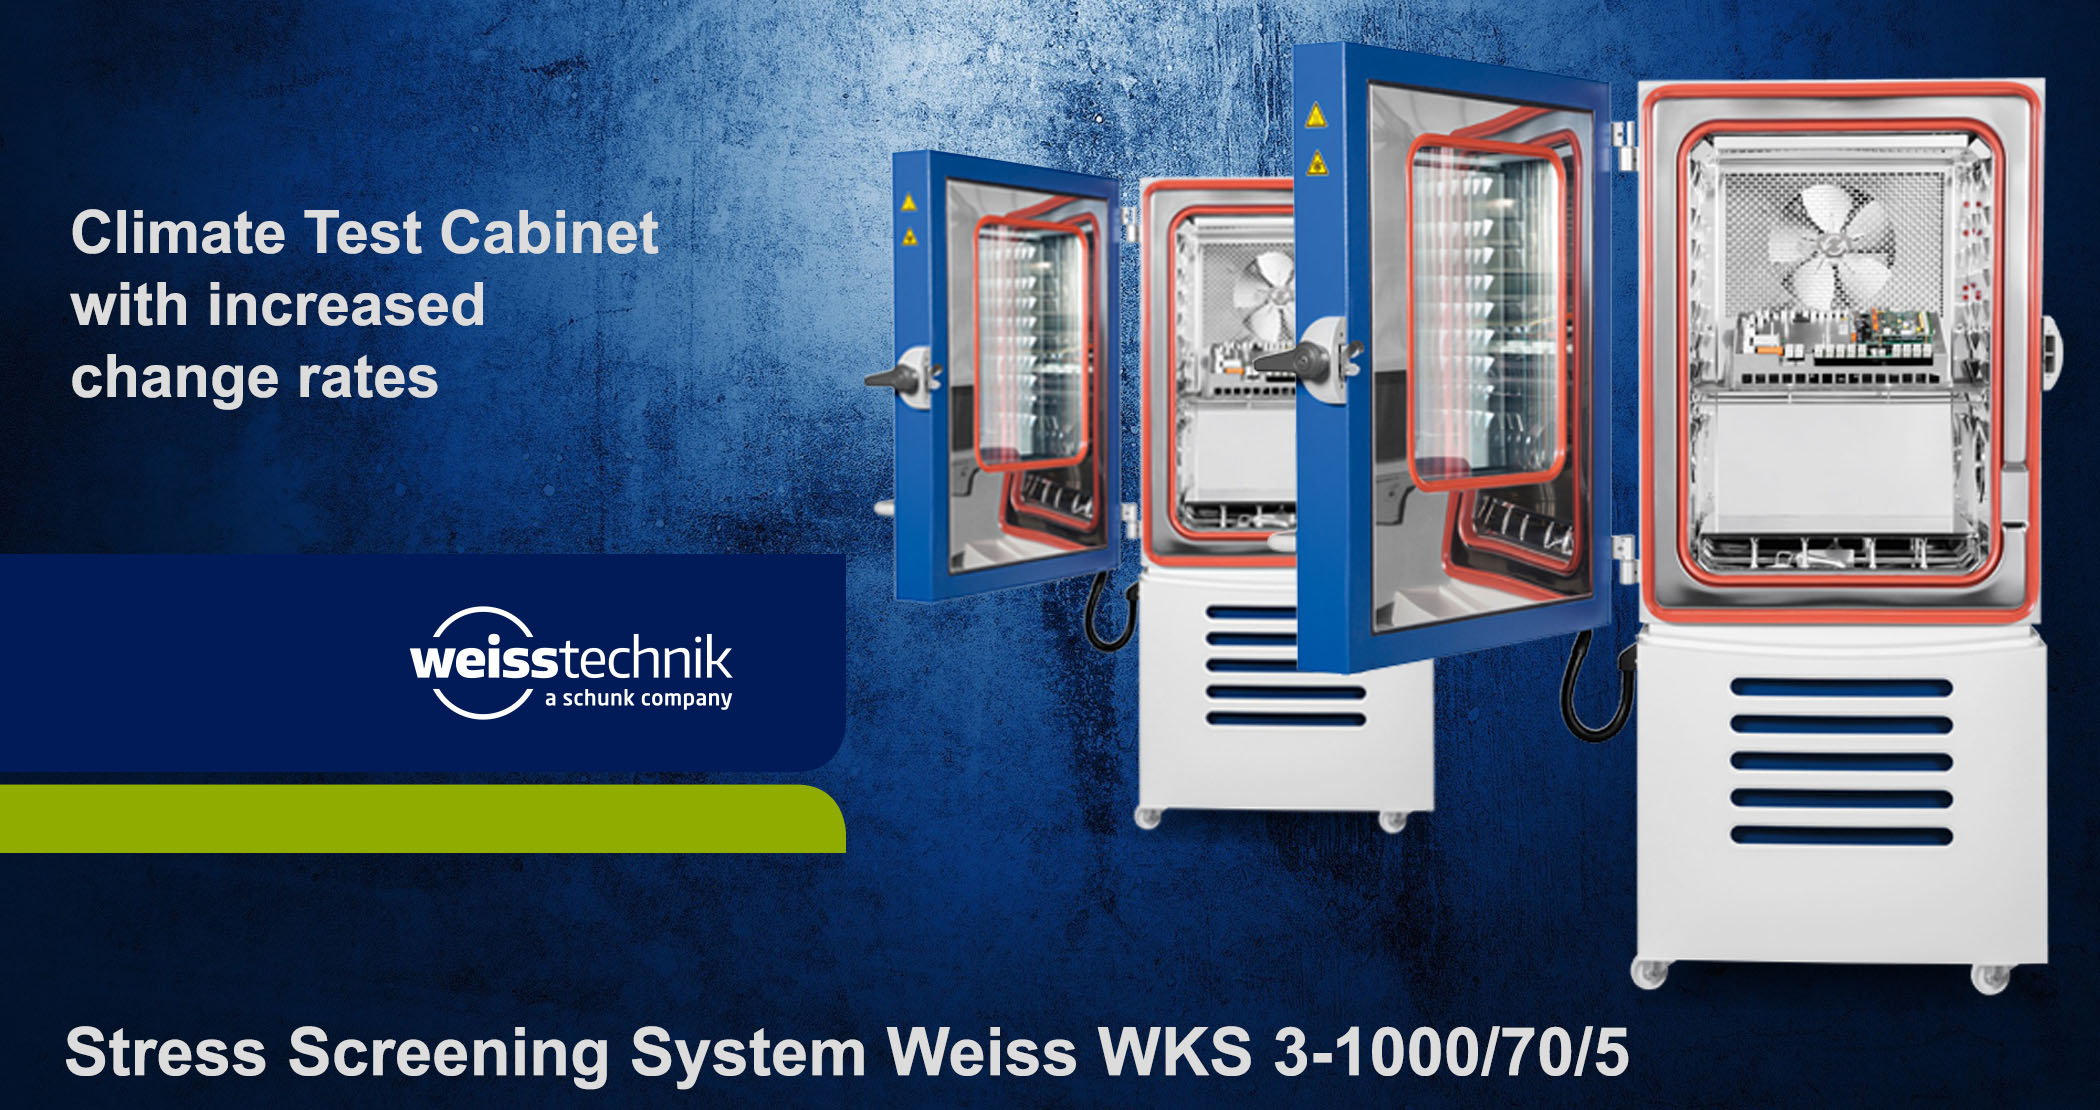 Stress Screening System Weiss, WKS3-1000-70-5 climate chamber